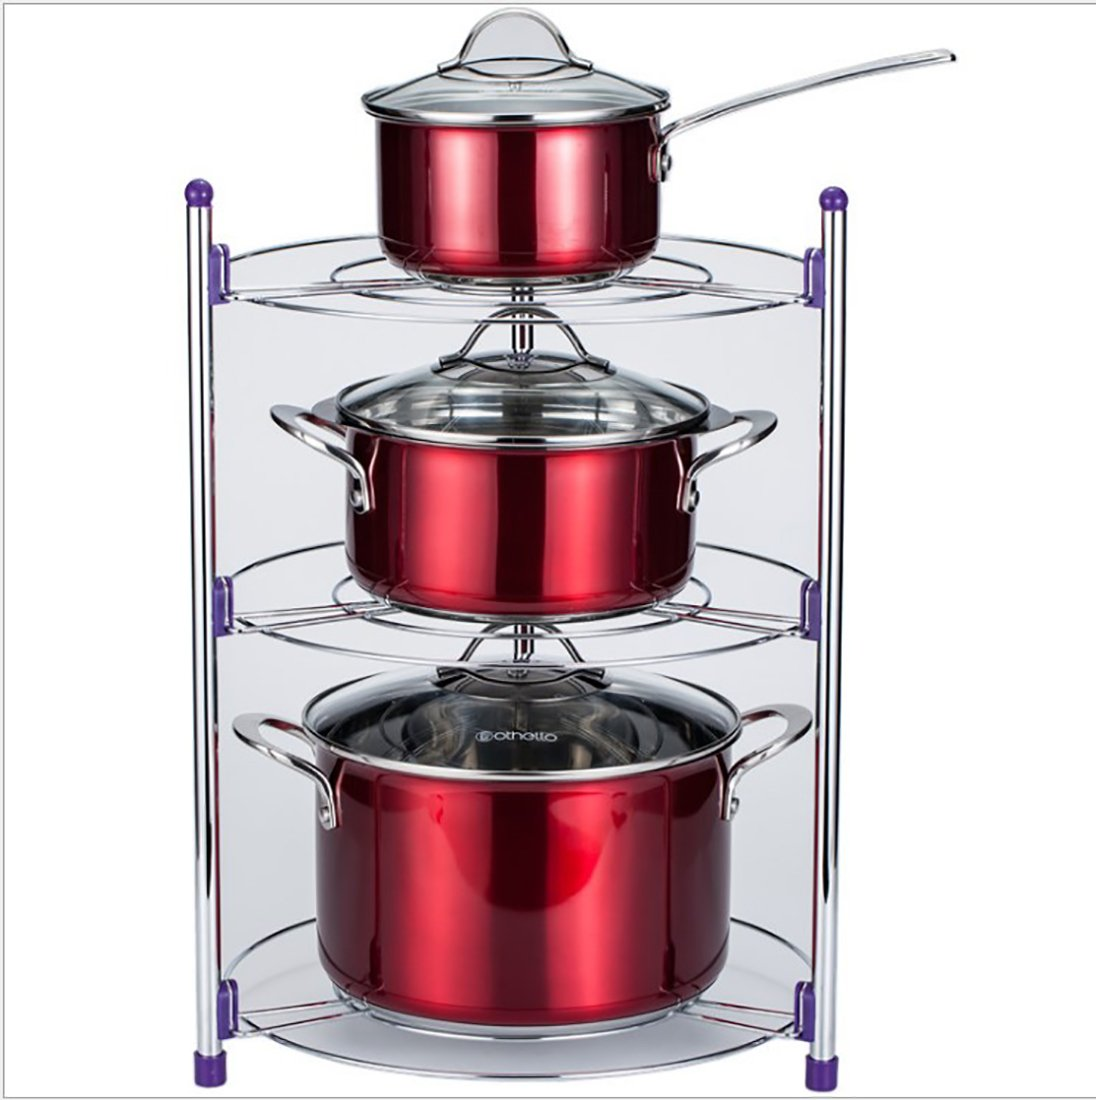 EZ Breezy Home Stainless Steel 3 Rack Pan and Pot Shelf Storage Tower. Instant Shelves for Storage of Instapot, Crock Pot, Stock Pot, Dish Pan, Cast Iron Skillet, Lids and More. Includes 5 S Hooks